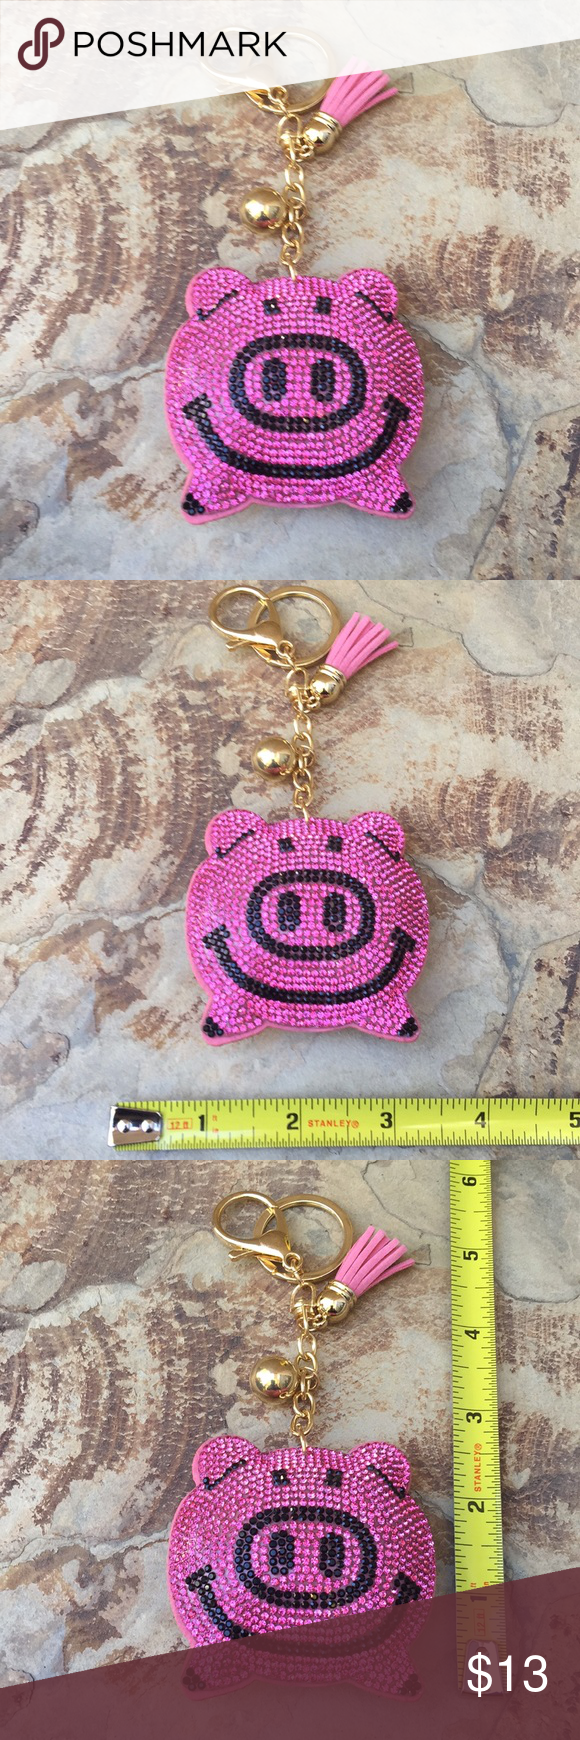 "Bag Charms For ""Bag Swag!"""